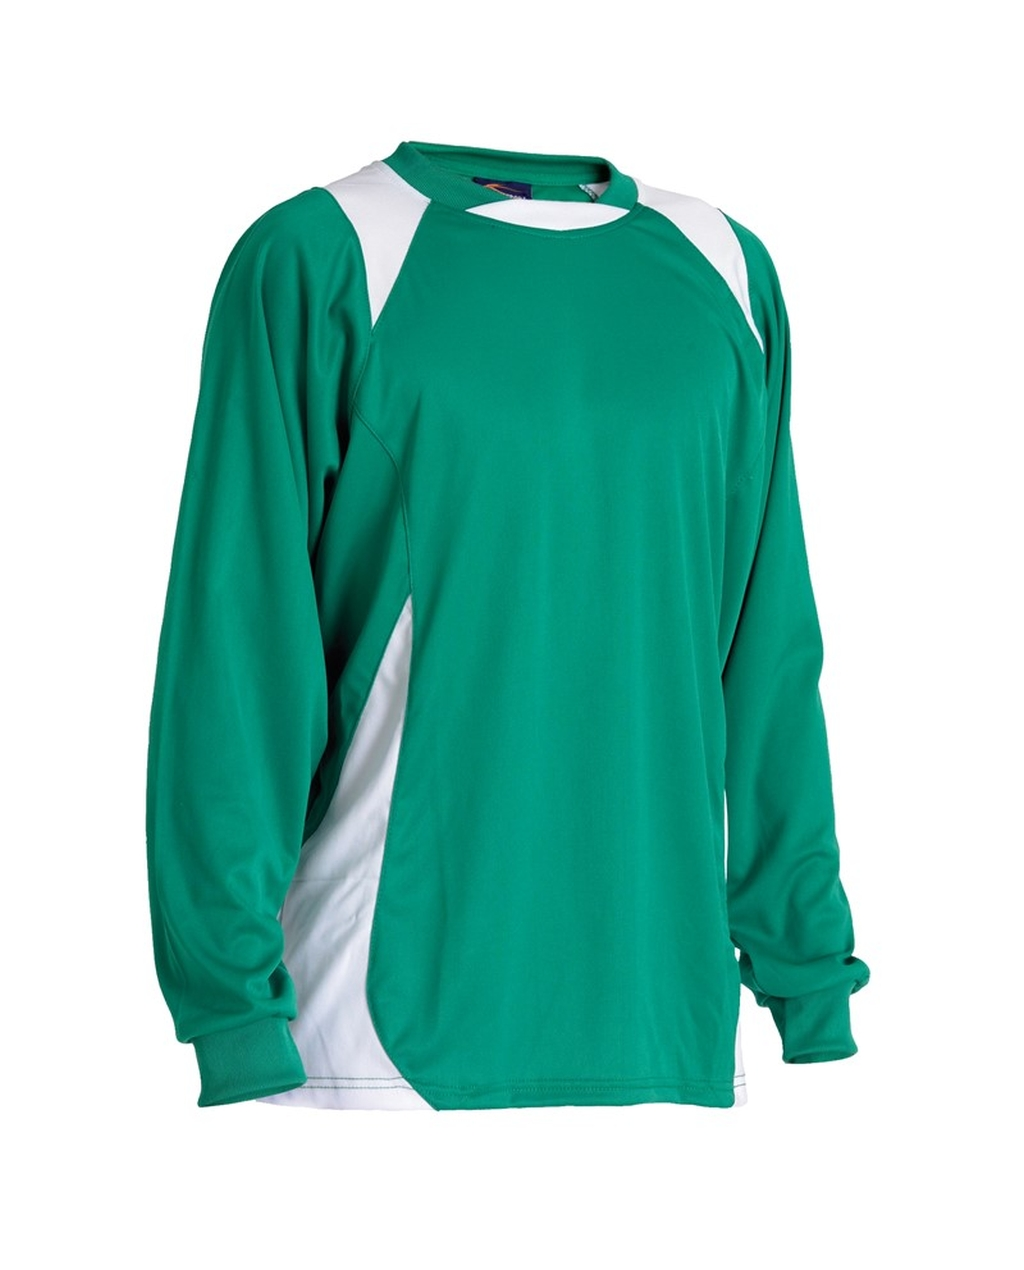 Panelled Soccer Shirt - 30/32